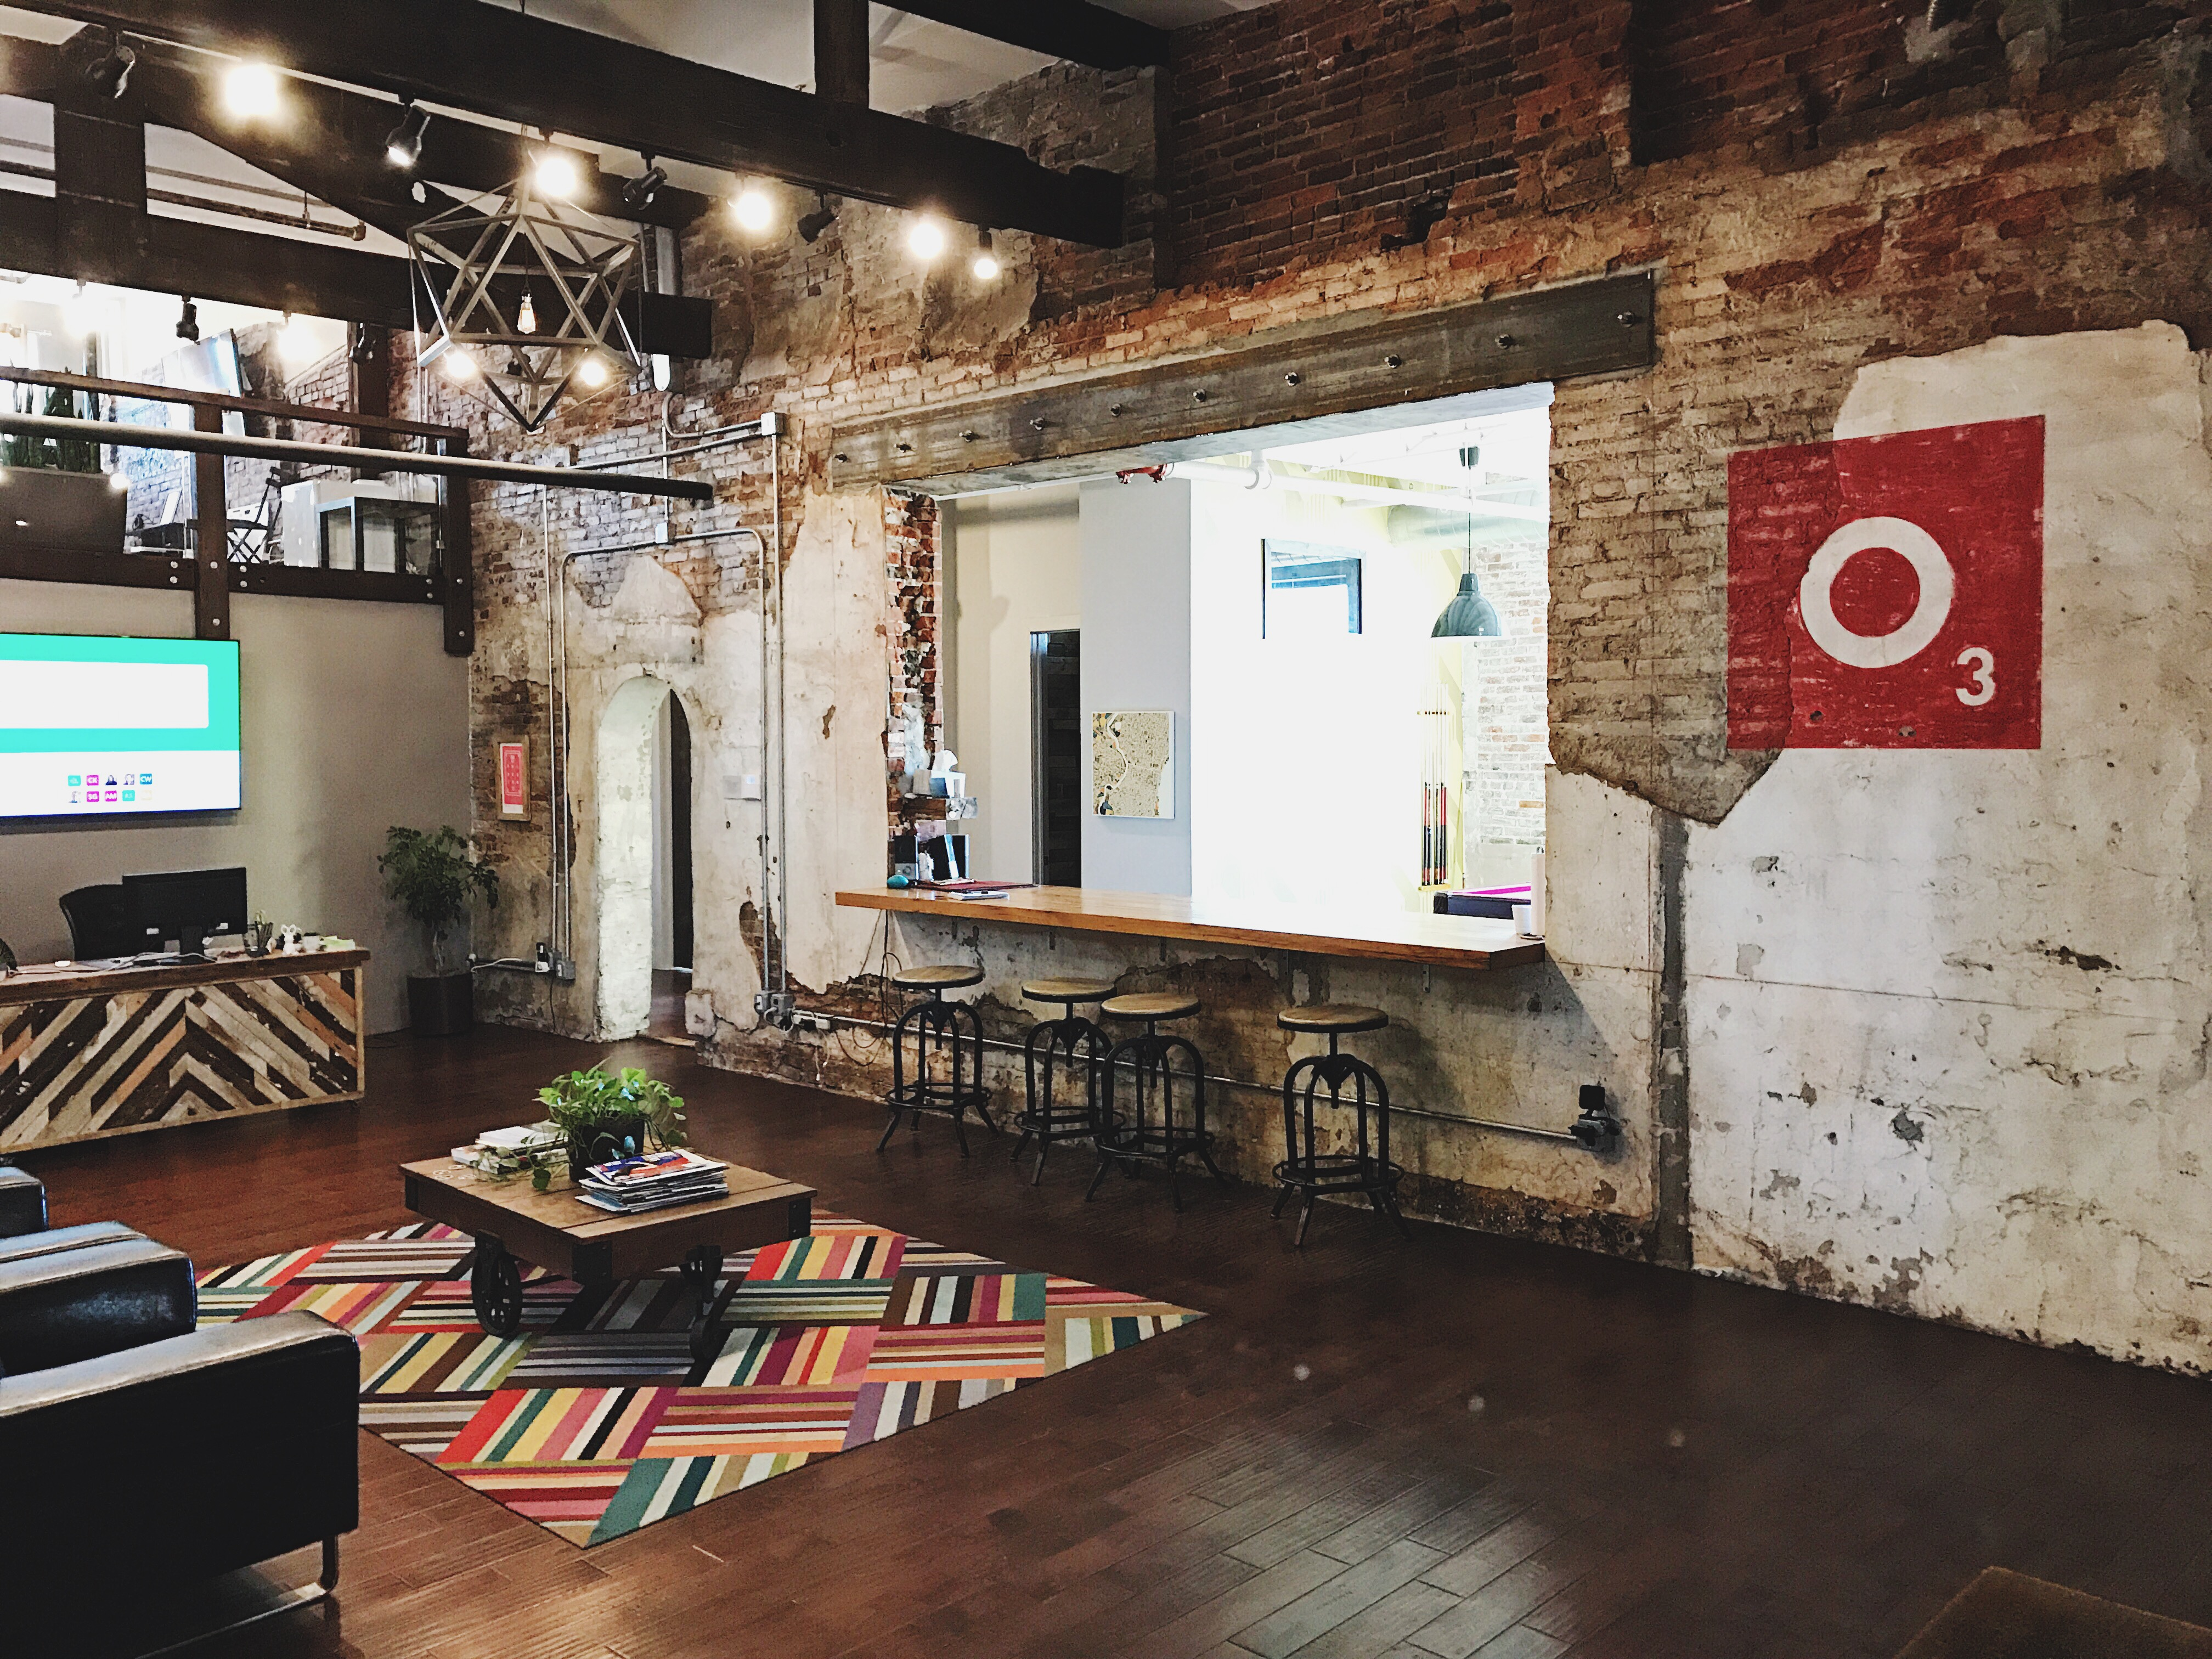 Cool office spaces Super We Are Proud To Announce That O3 World Was Recently Added To Philadelphias Cool Office Spaces Freshomecom O3 World Named One Of Philadelphia Business Journals